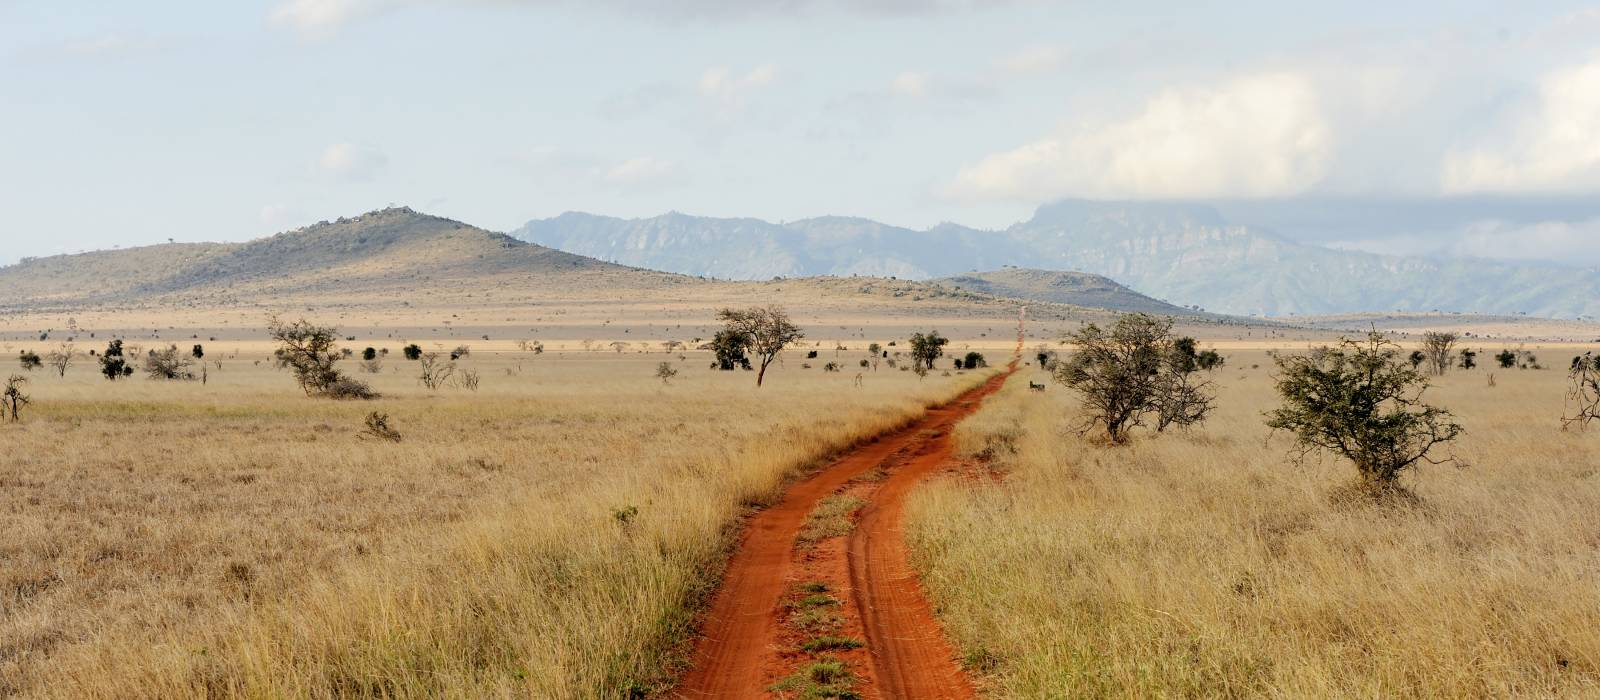 Savannenlandschaft im Nationalpark in Kenia, Afrika